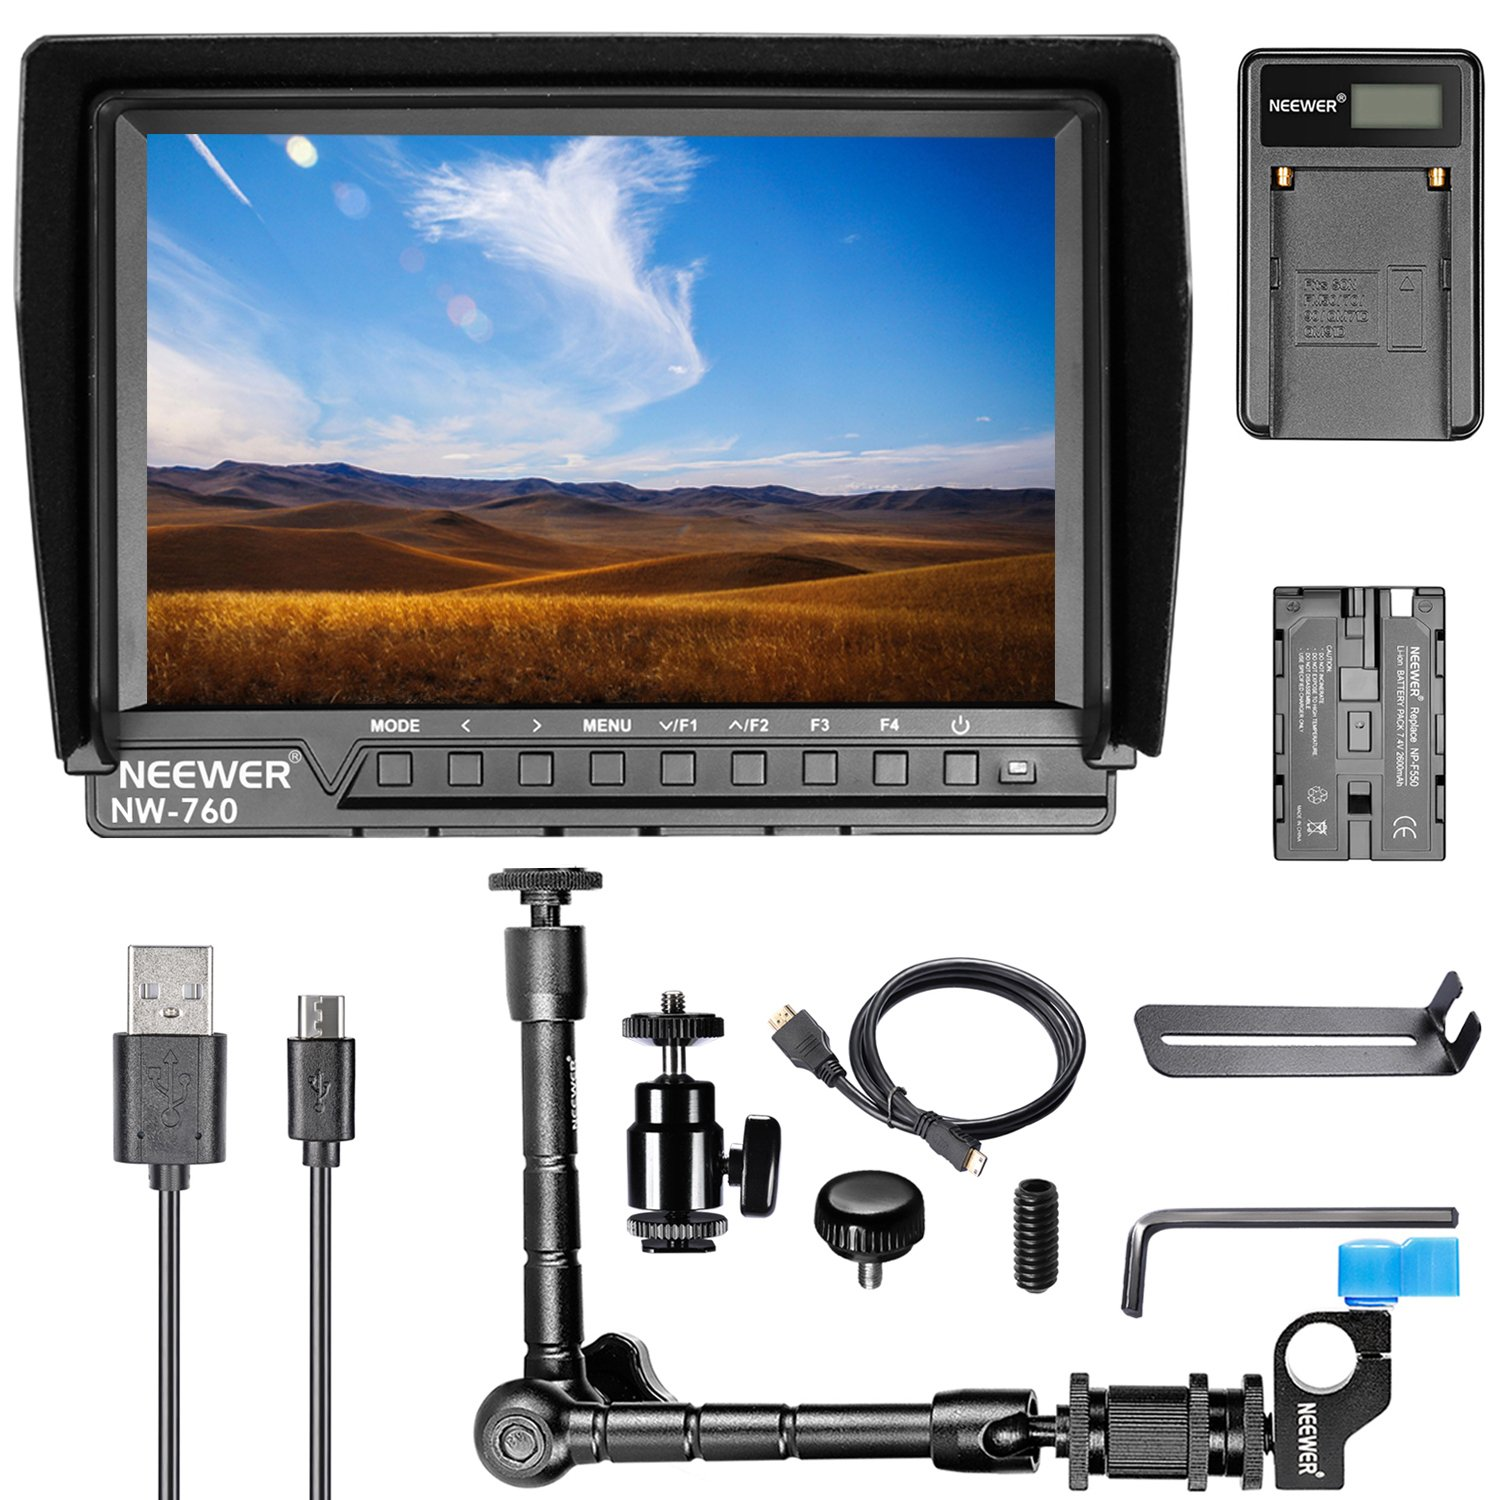 Neewer NW-760 7 inches Full HD 1920x1200 IPS Screen Camera Field Monitor Kit for Sony Canon Nikon Olympus Pentax Panasonic, Include NW-760 Monitor, Magic Arm, USB Battery Charger, F550 Replacement Battery 90088942